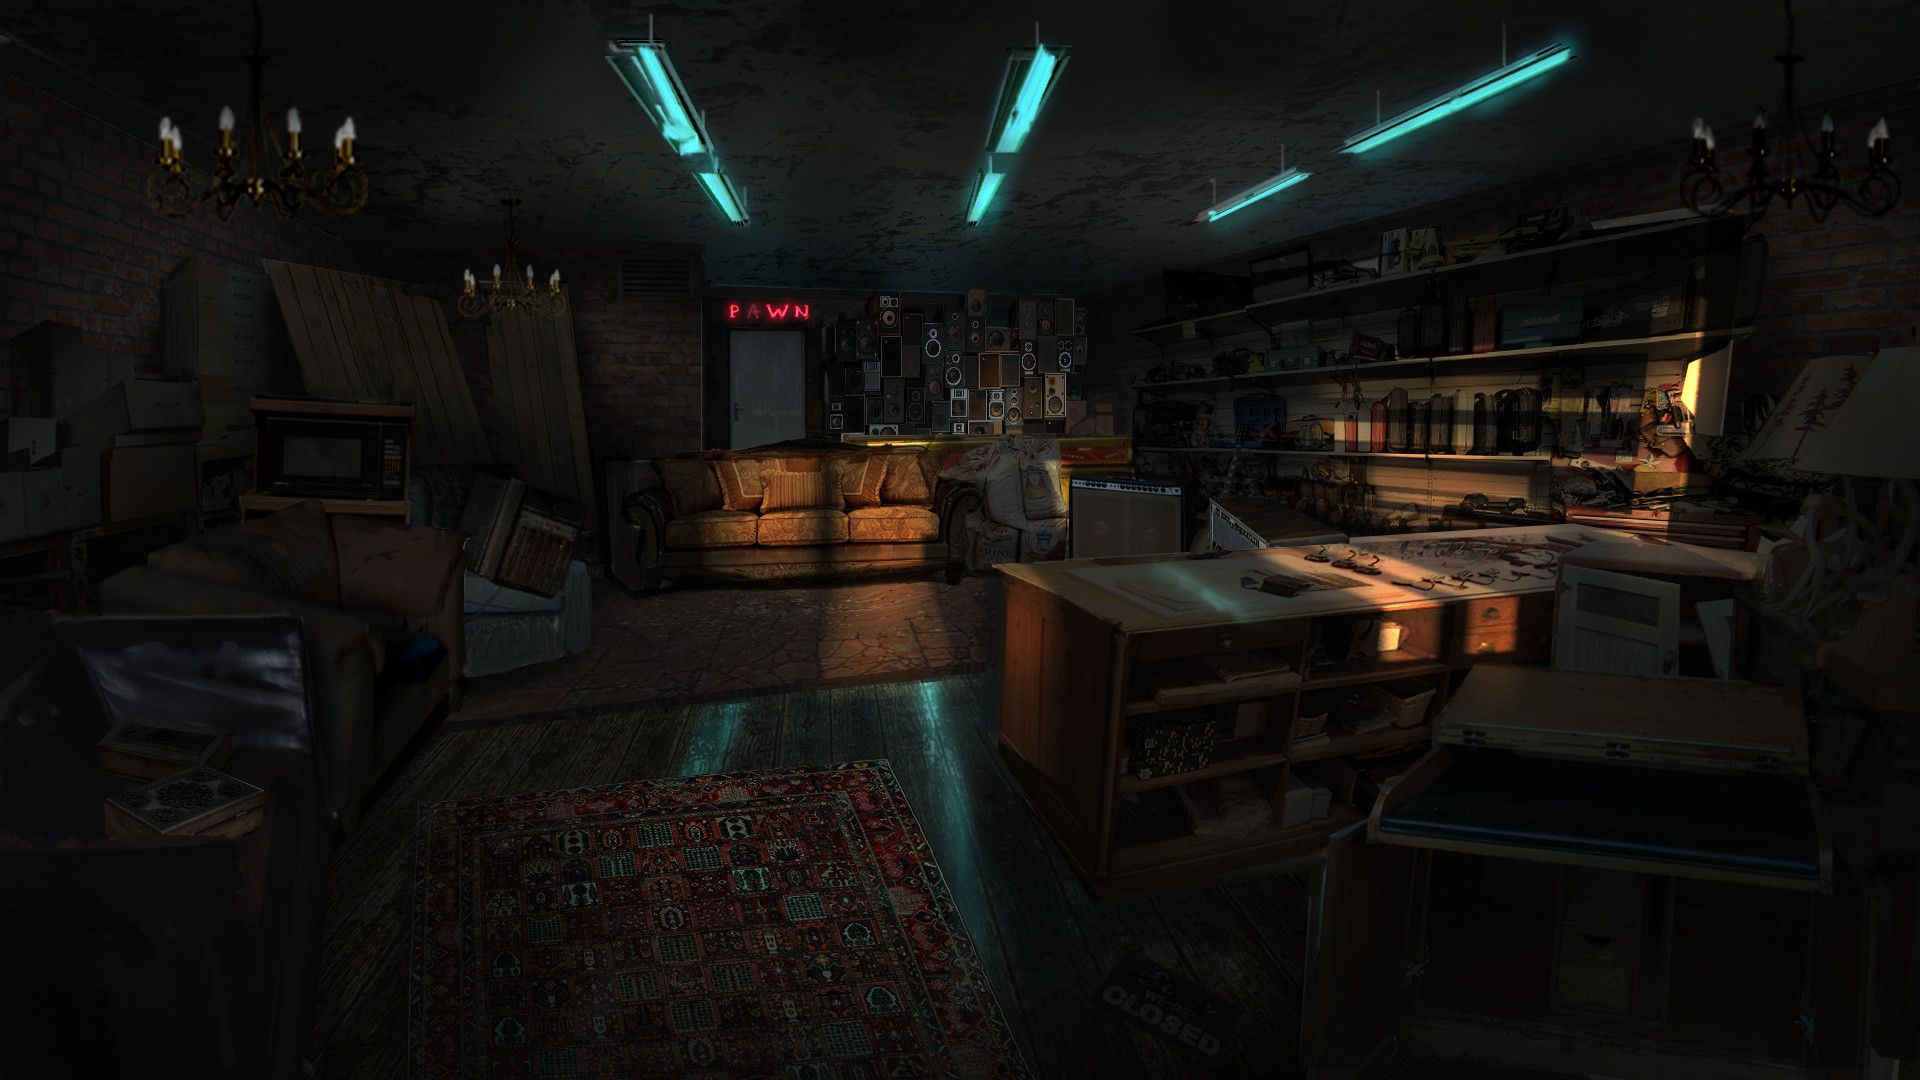 Jack eaves pawn sohop interior concept